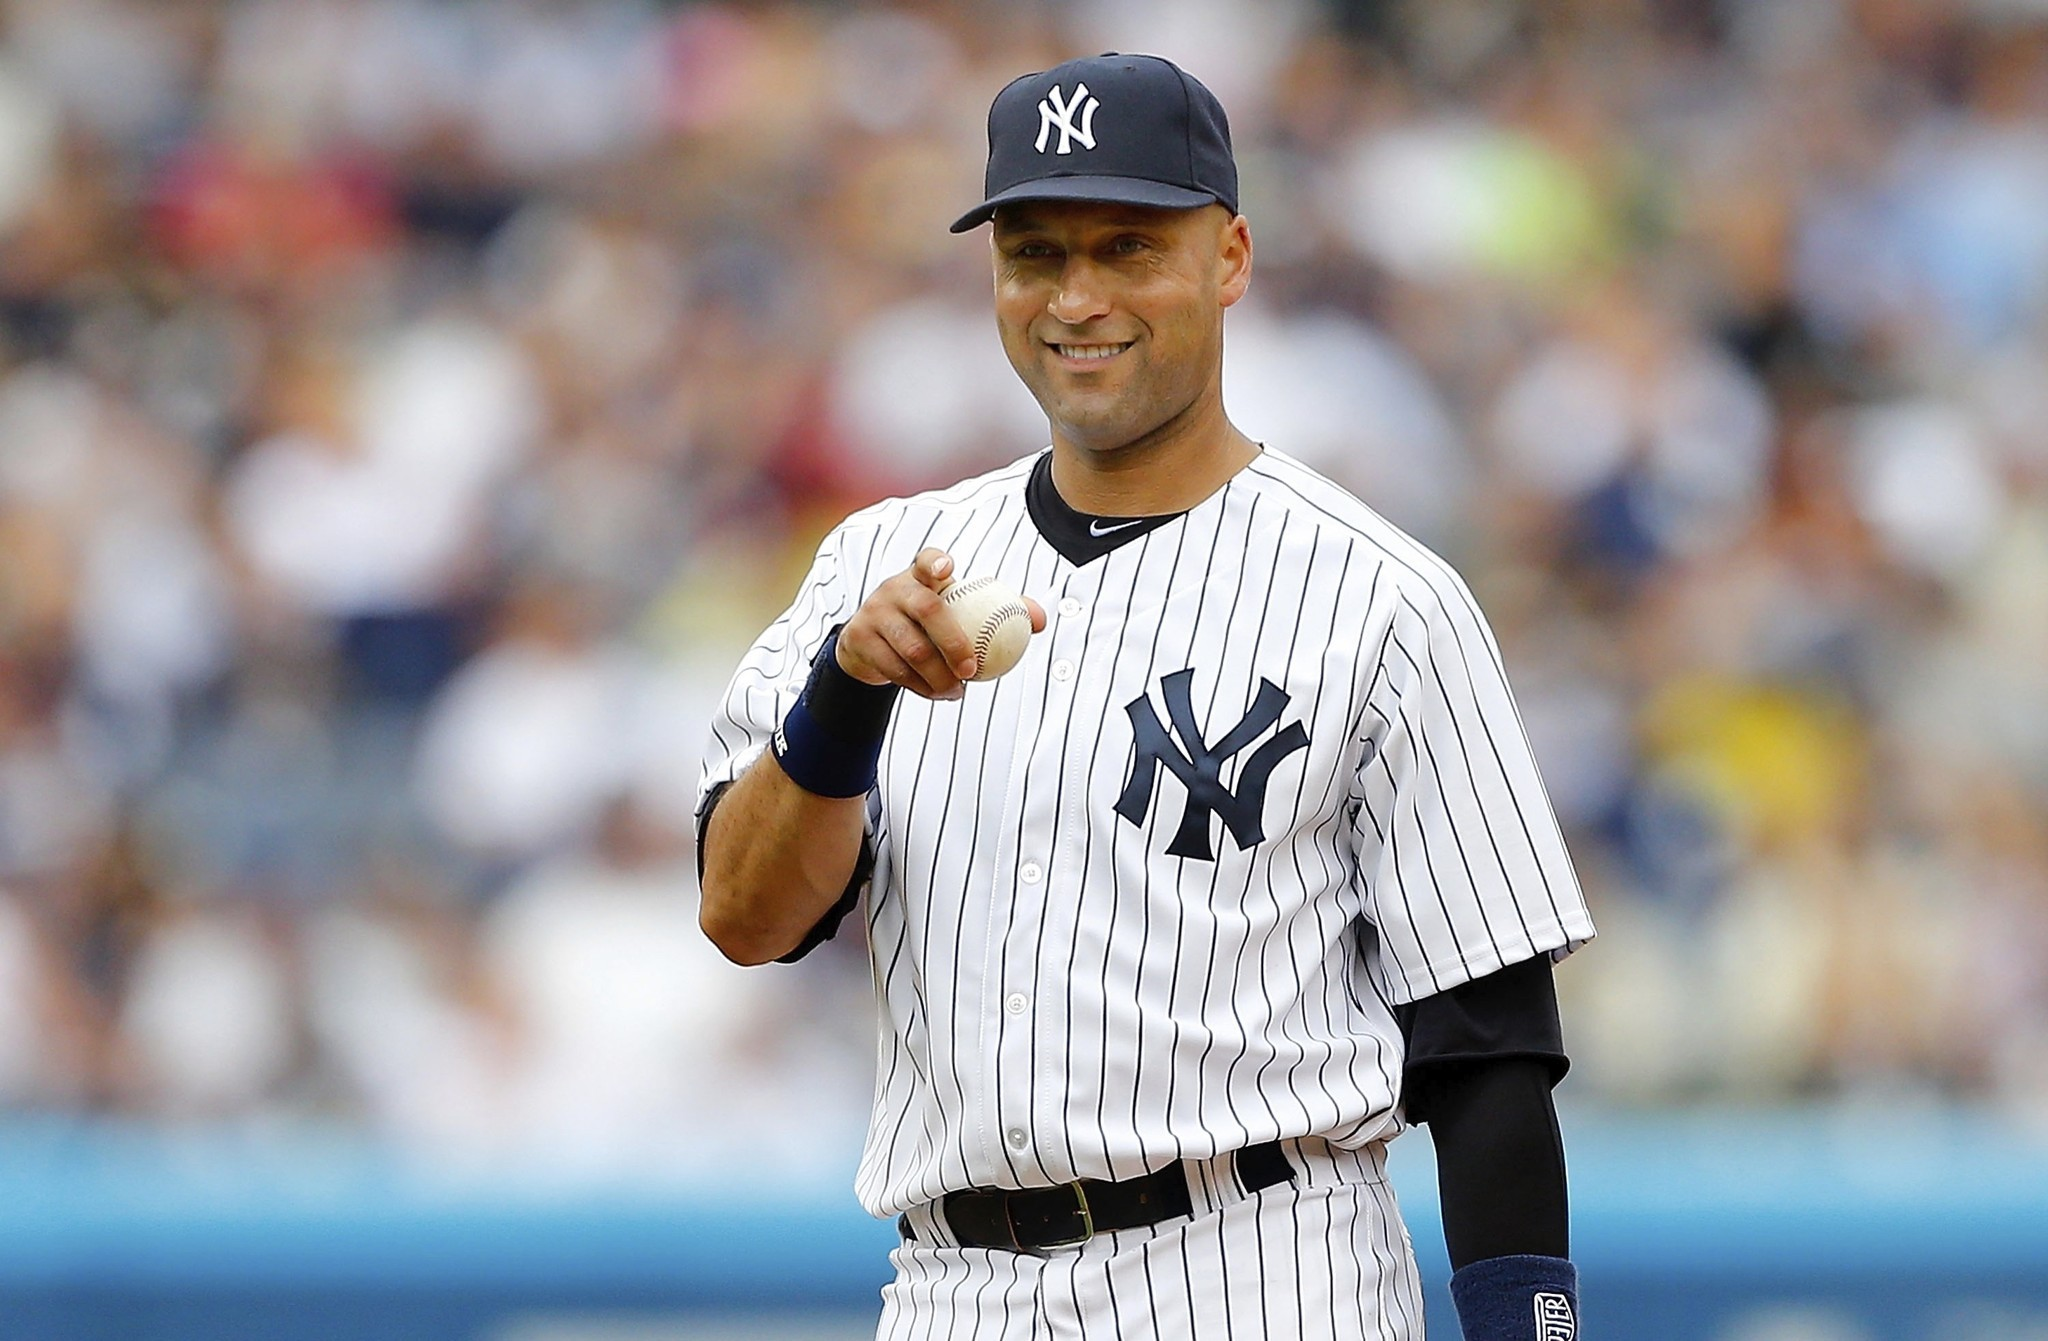 derek jeter E online - your source for entertainment news, celebrities, celeb news, and celebrity gossip check out the hottest fashion, photos, movies and tv shows.